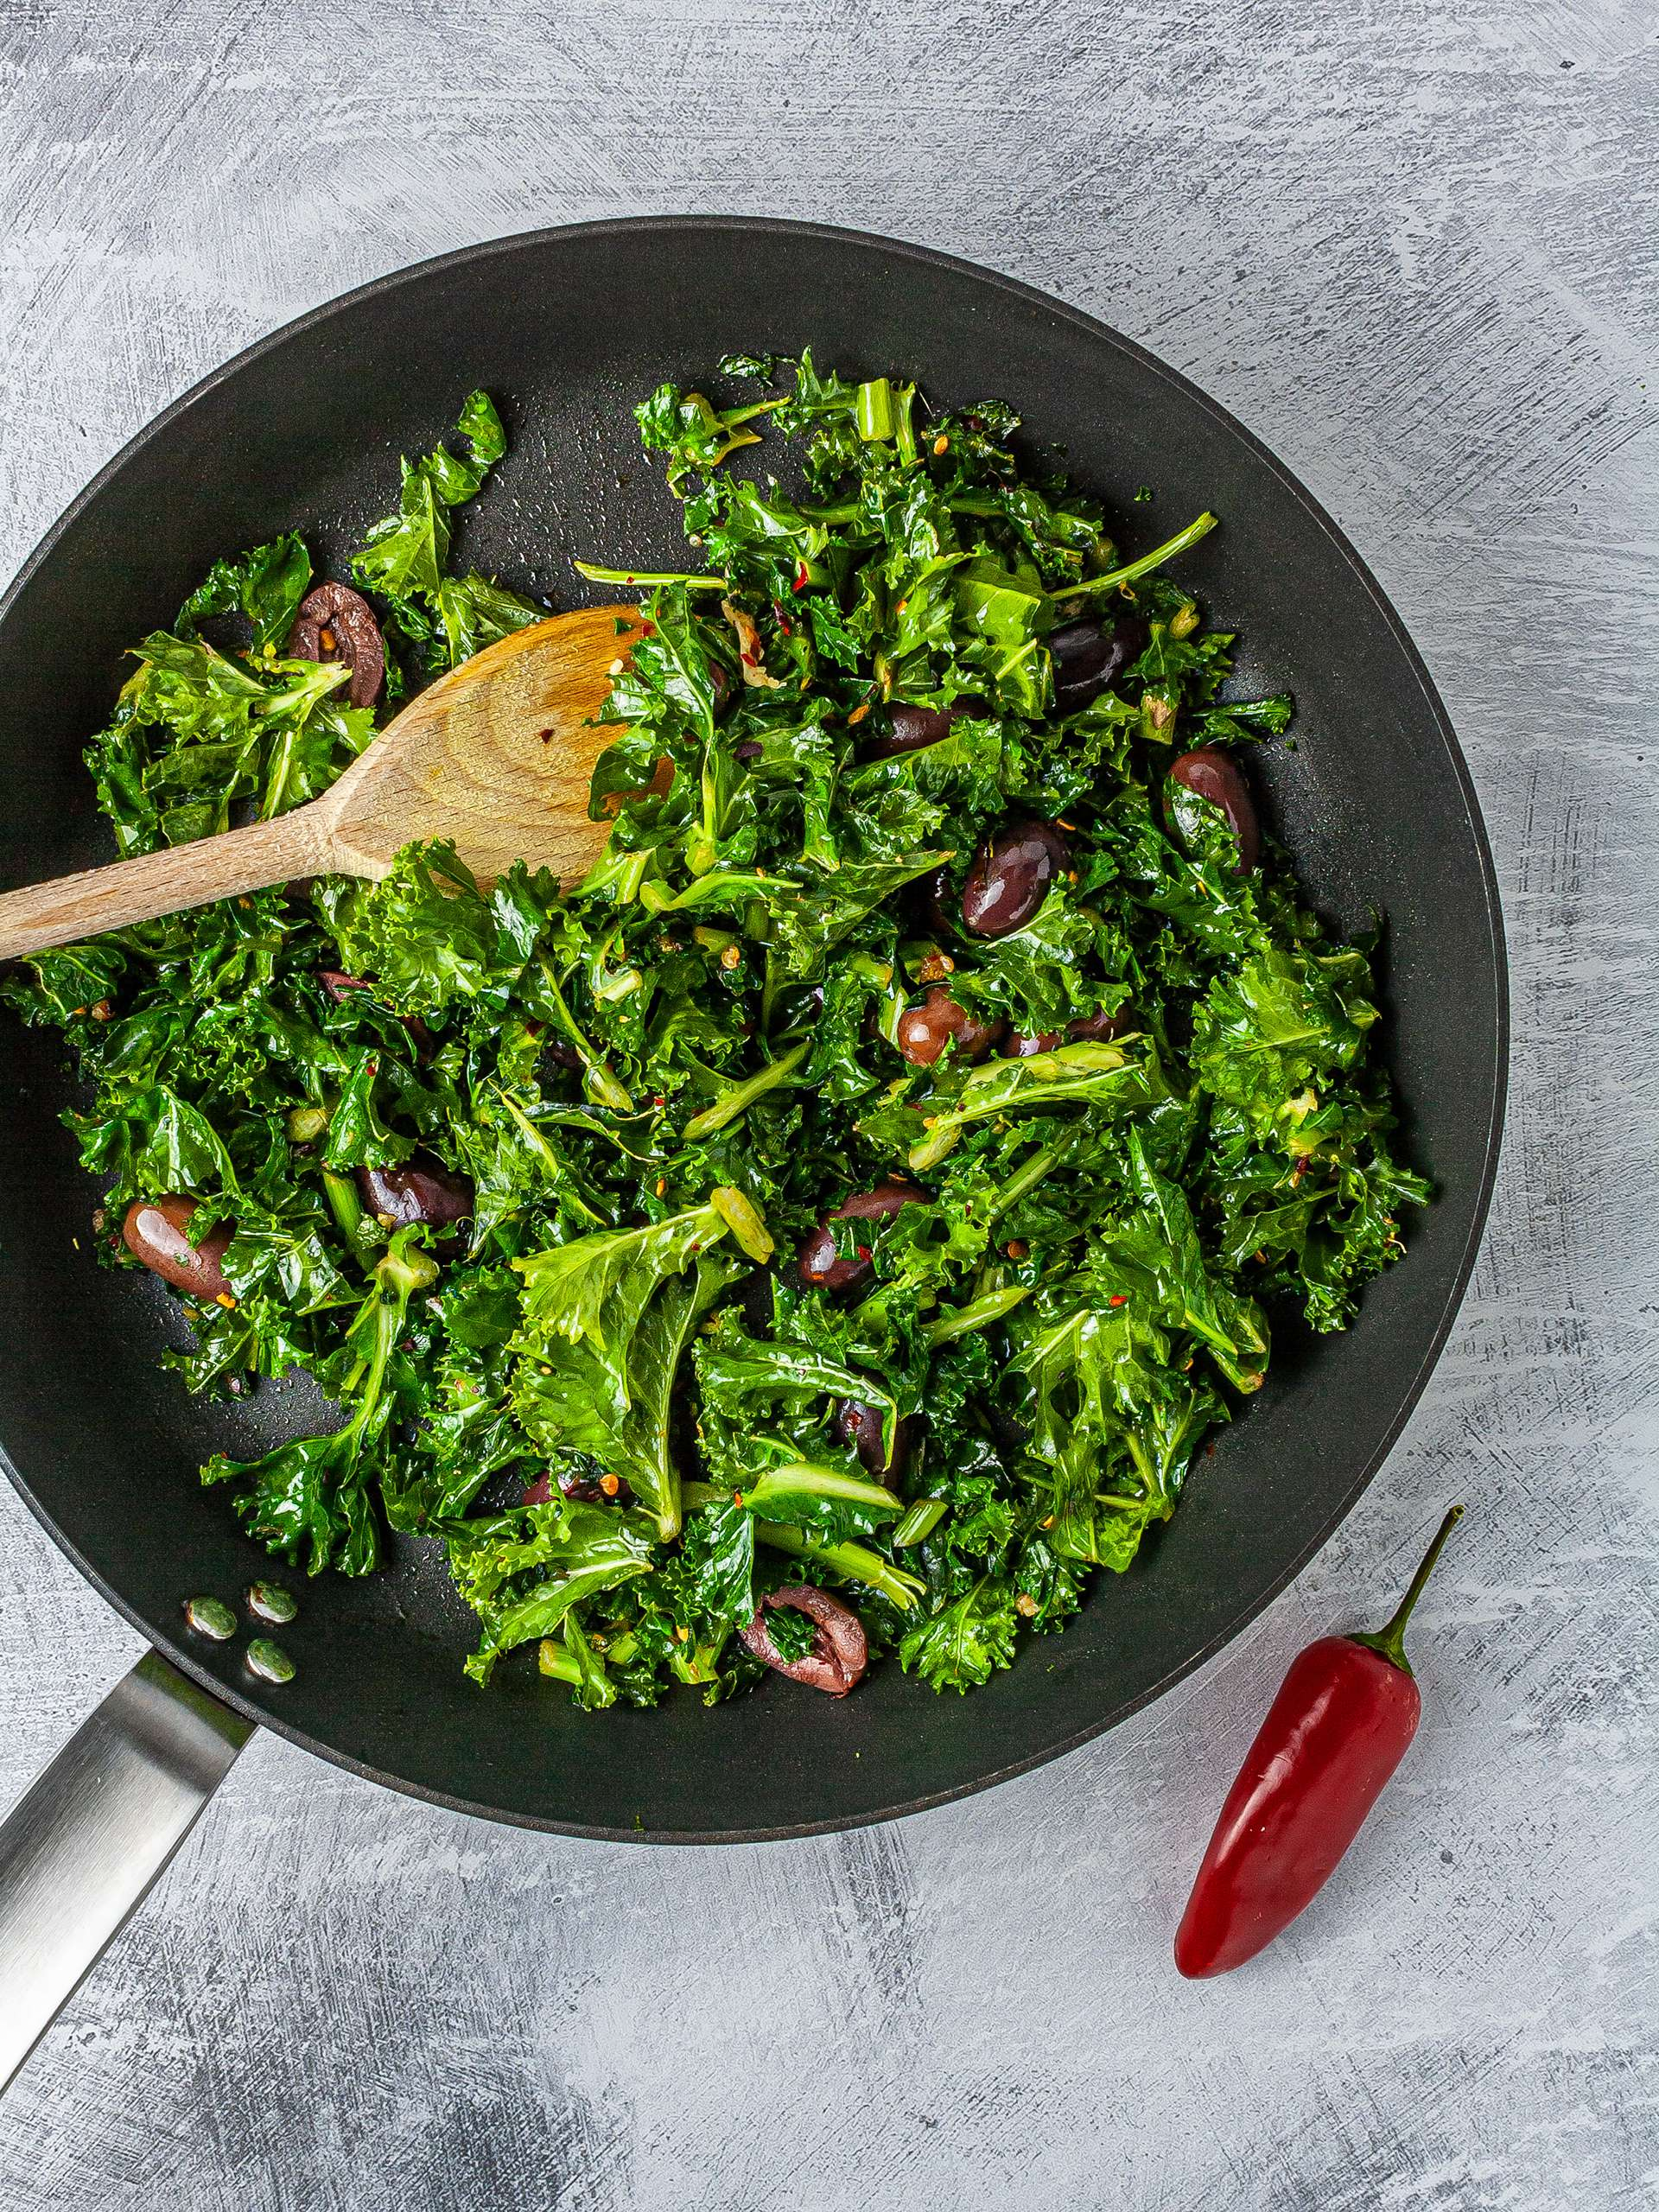 Kale cooked in a pan with chillies and olives.